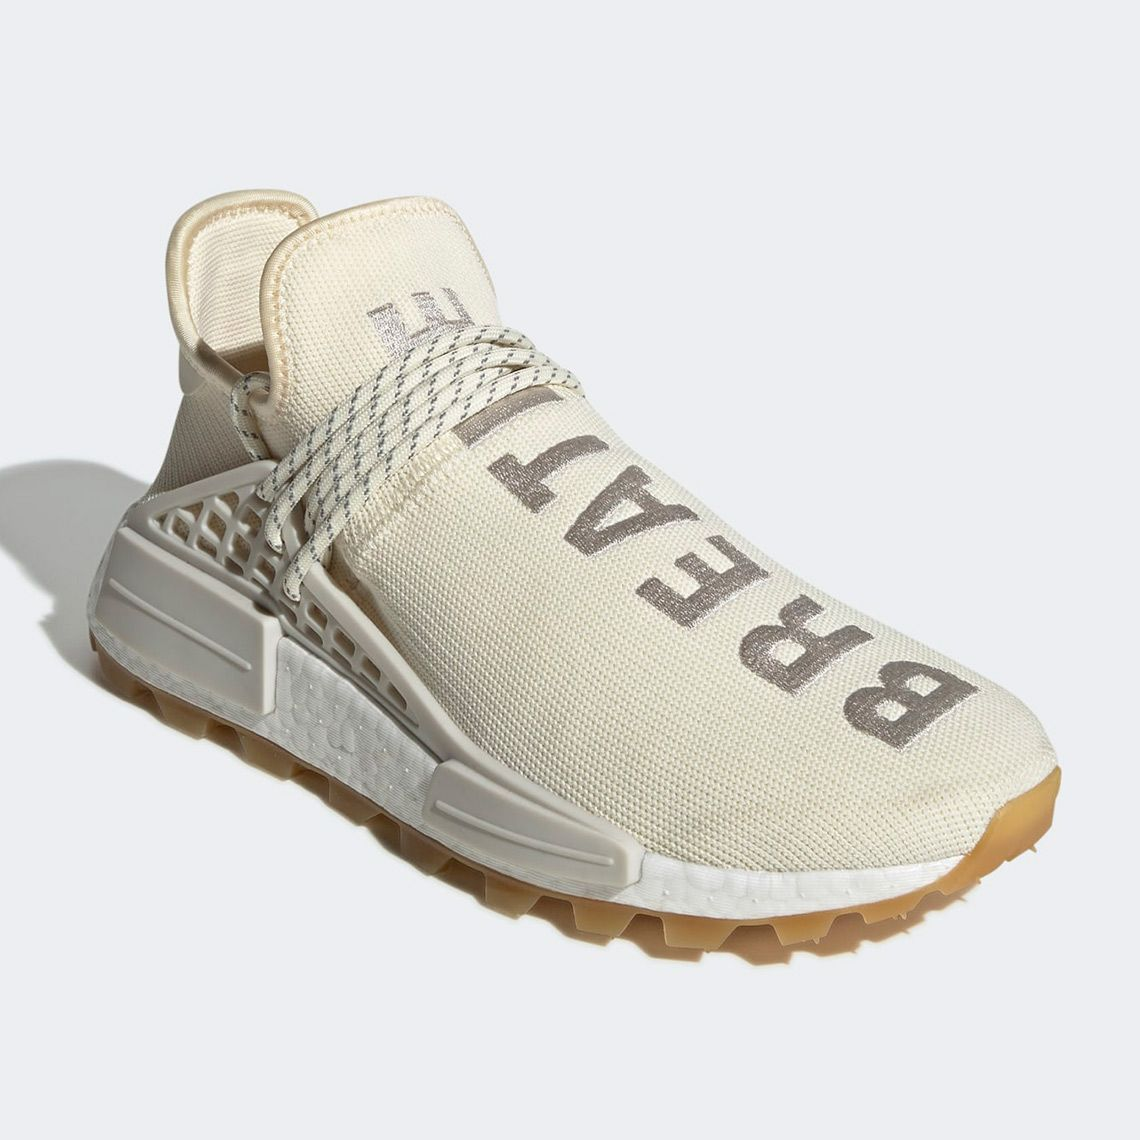 Pharrell Adidas Nmd Hu Tr Cream White Eg7737 Sneakernews Com Adidas Nmd Stylish Shoes Cream Shoes